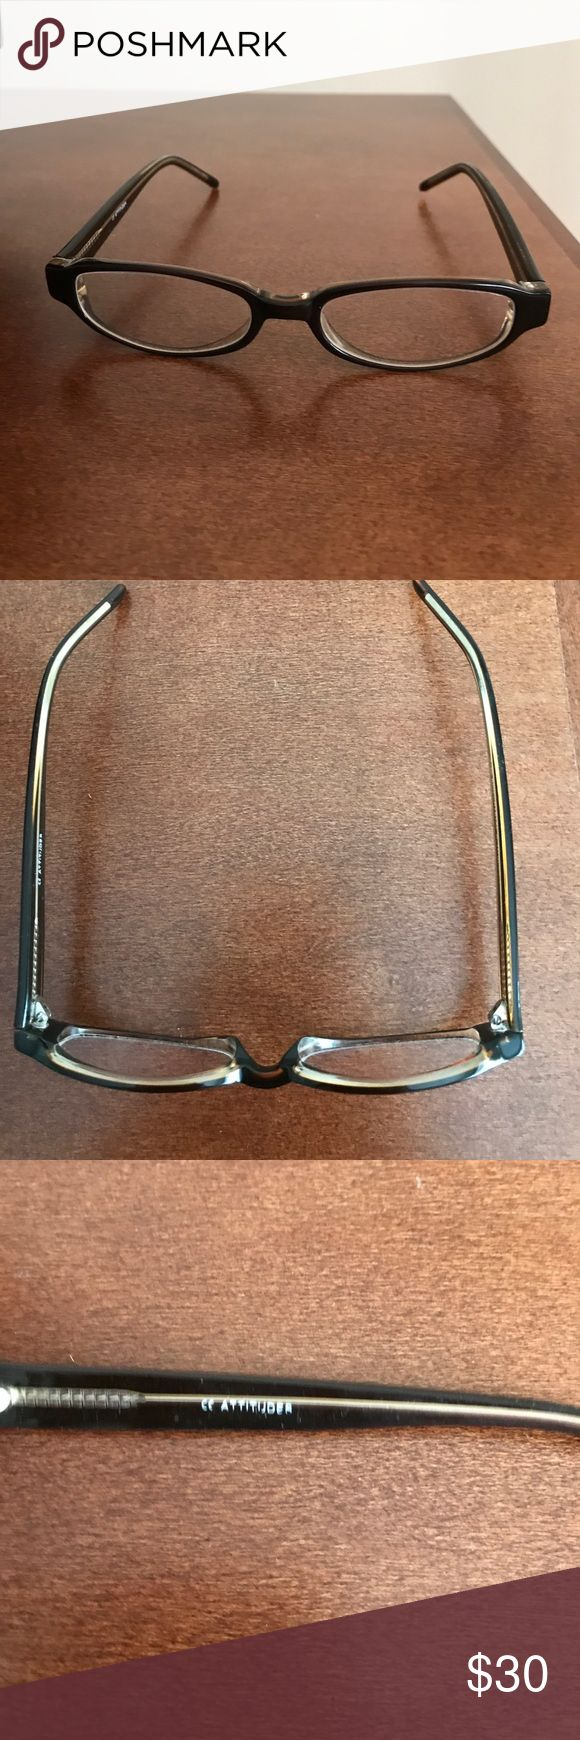 Cohens Optical Glasses Cohens Optical Glasses- brown frame- excellent condition- light prescription already there can be changed out- prescription is -.5- size is 50-17-140 Cohens Attitude Glasses Accessories Glasses